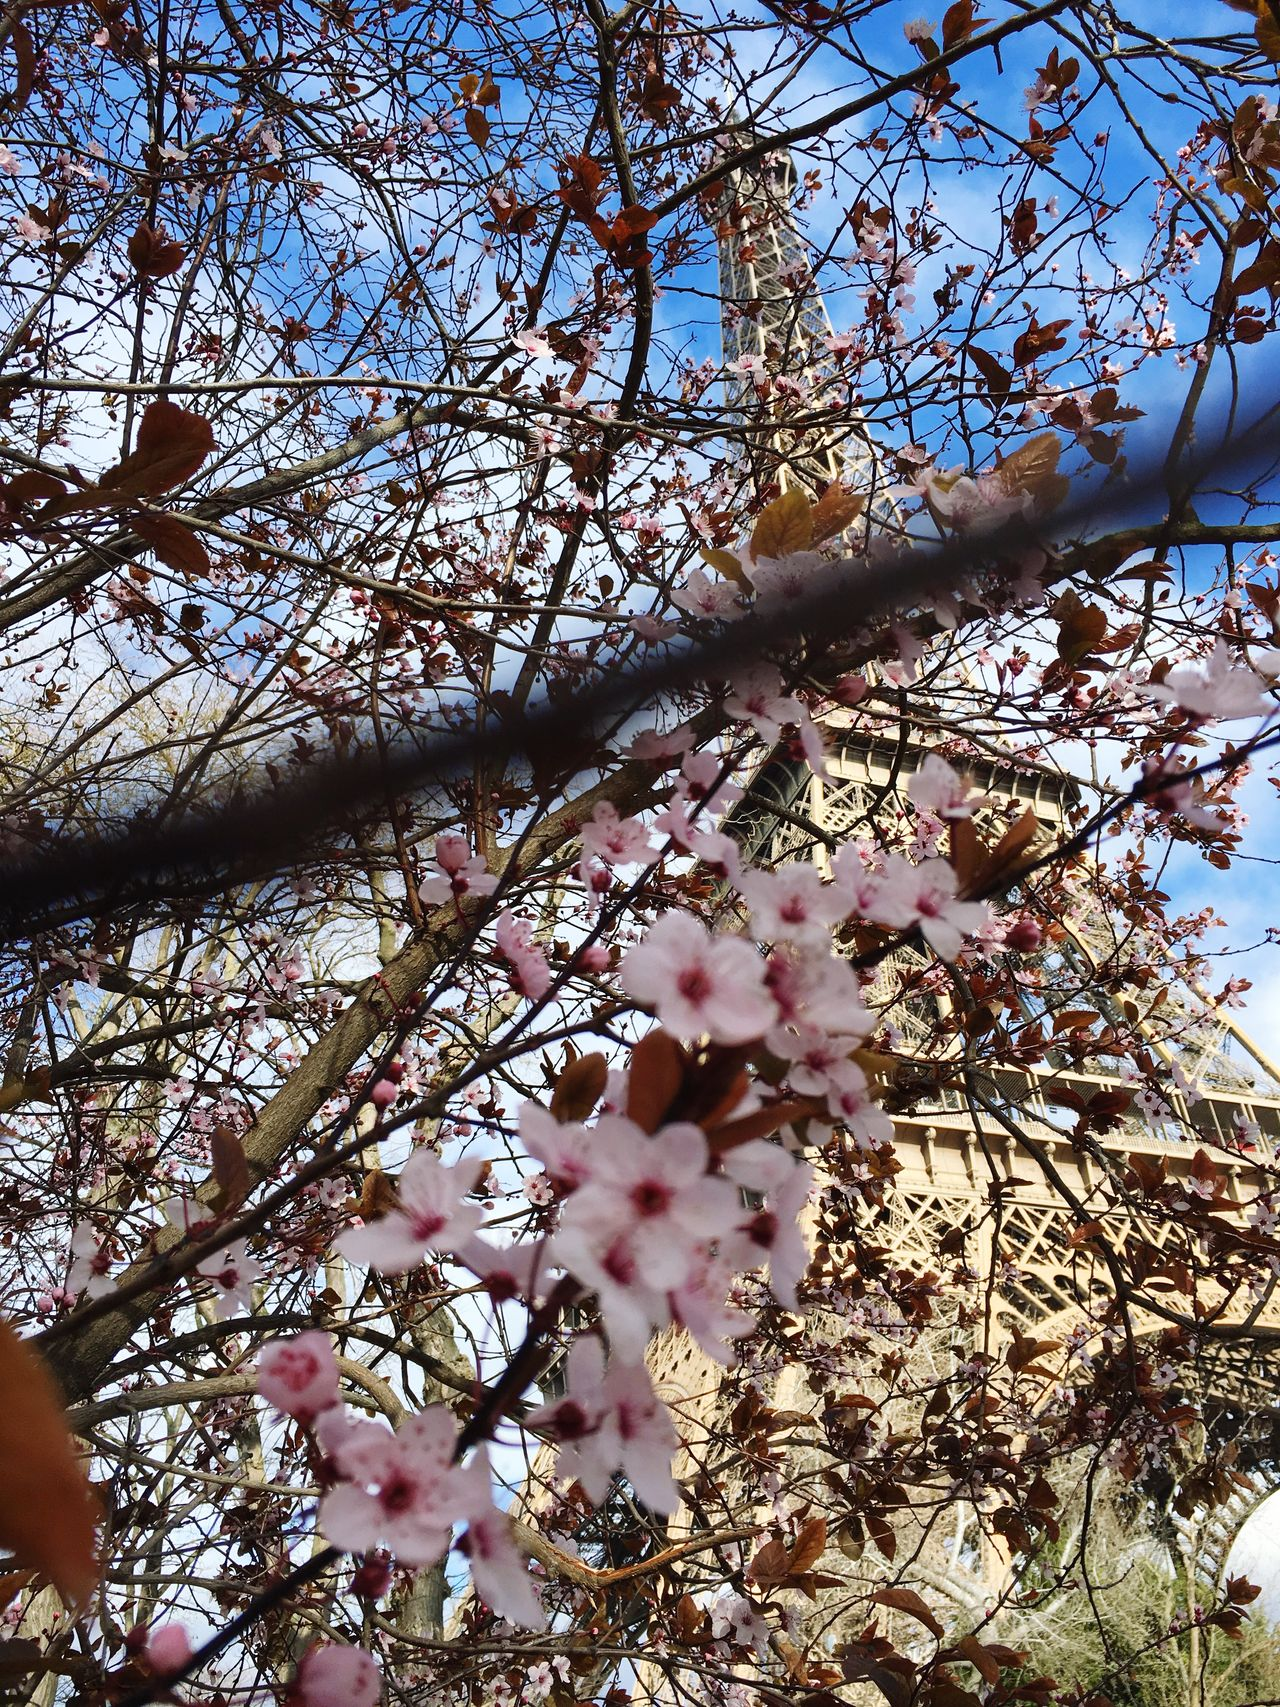 Beautiful day with sun and flowers Paris JesuisParis Urban Spring Fever Hello World Enjoying Life Torre Eiffel Beautifulcity Sunny Day Honeymoon Beautiful Day Travel Photography Iphonephotography Iphone6s Photography Iphone6s Taking Photos Relaxing Spring Has Arrived Spring Flowers Springtime Nature_collection Nature Flower Flowers Eiffel Tower Backgrounds